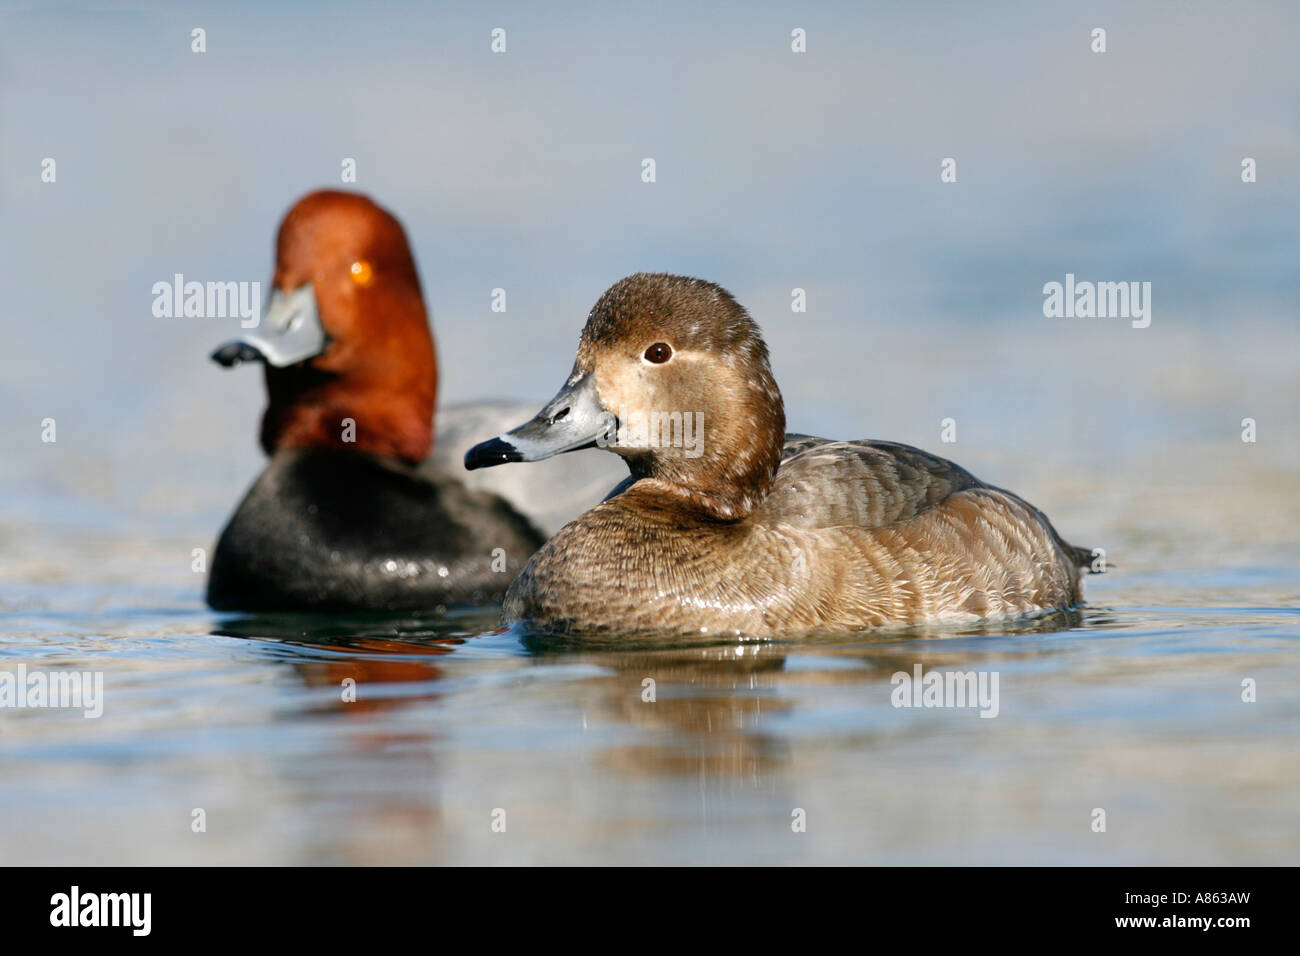 Male and Female Redheads - Stock Image